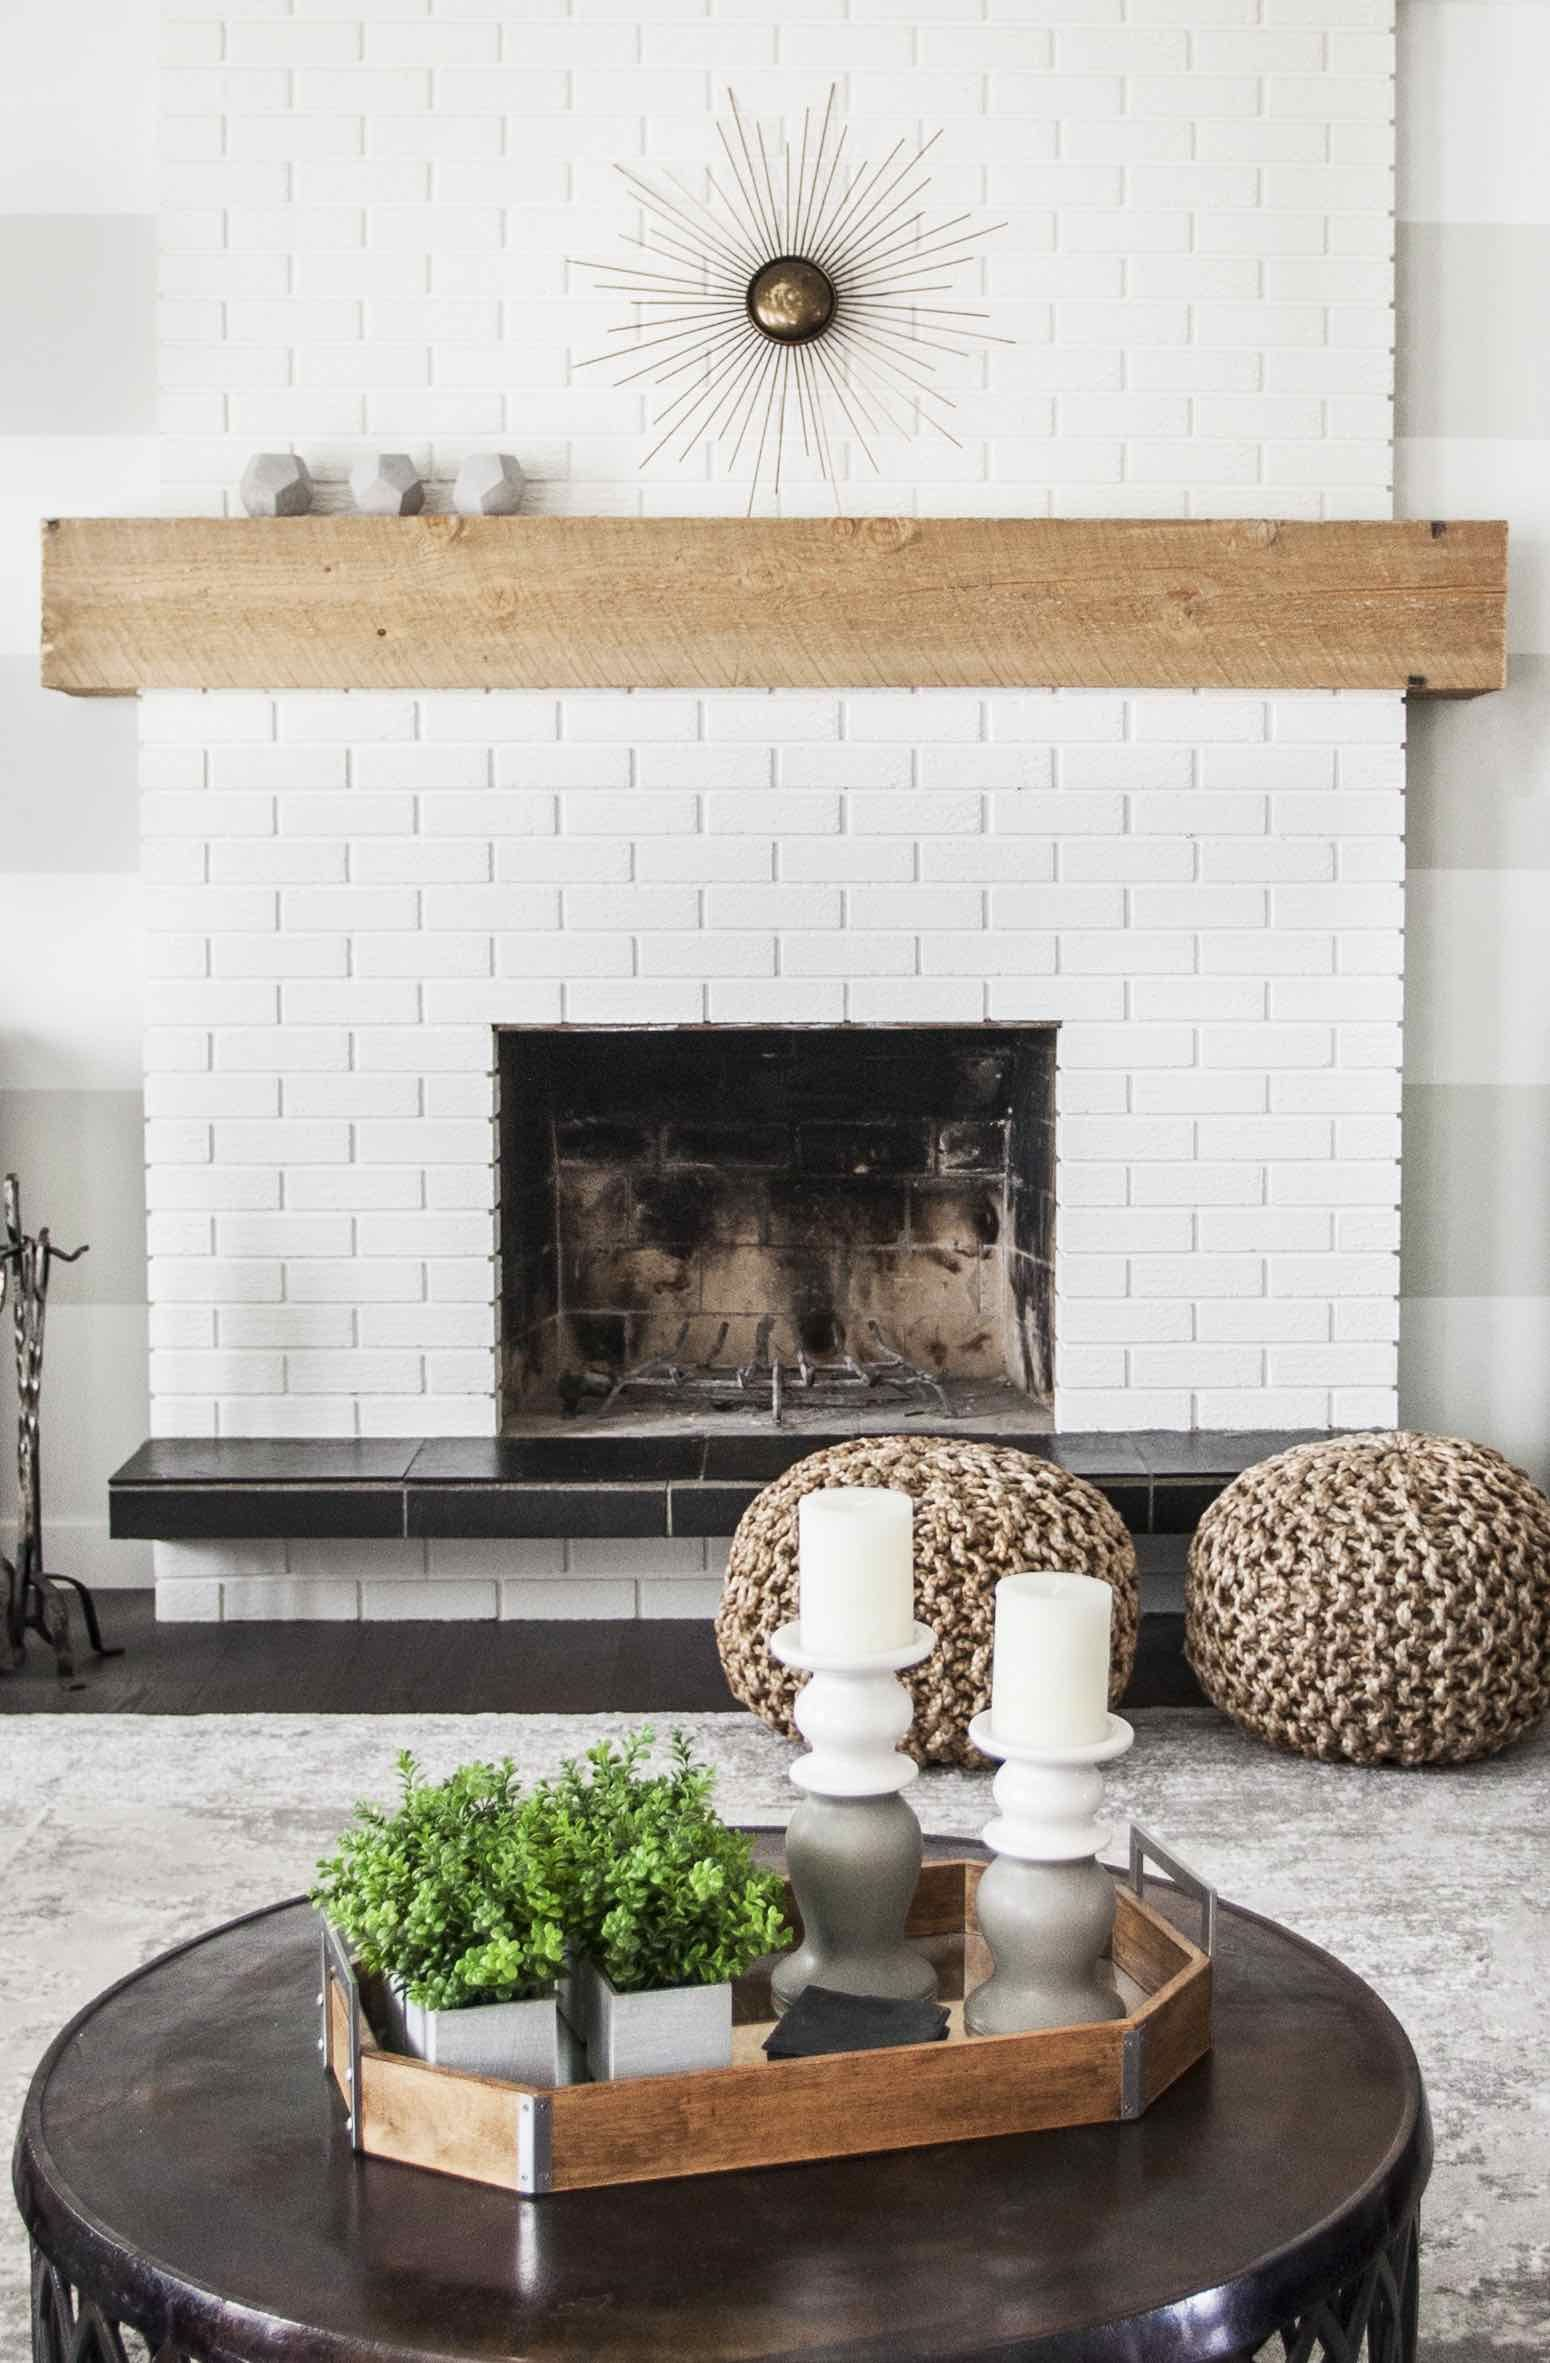 White Brick Fireplace Like Mantel Style Extended Past Fireplace